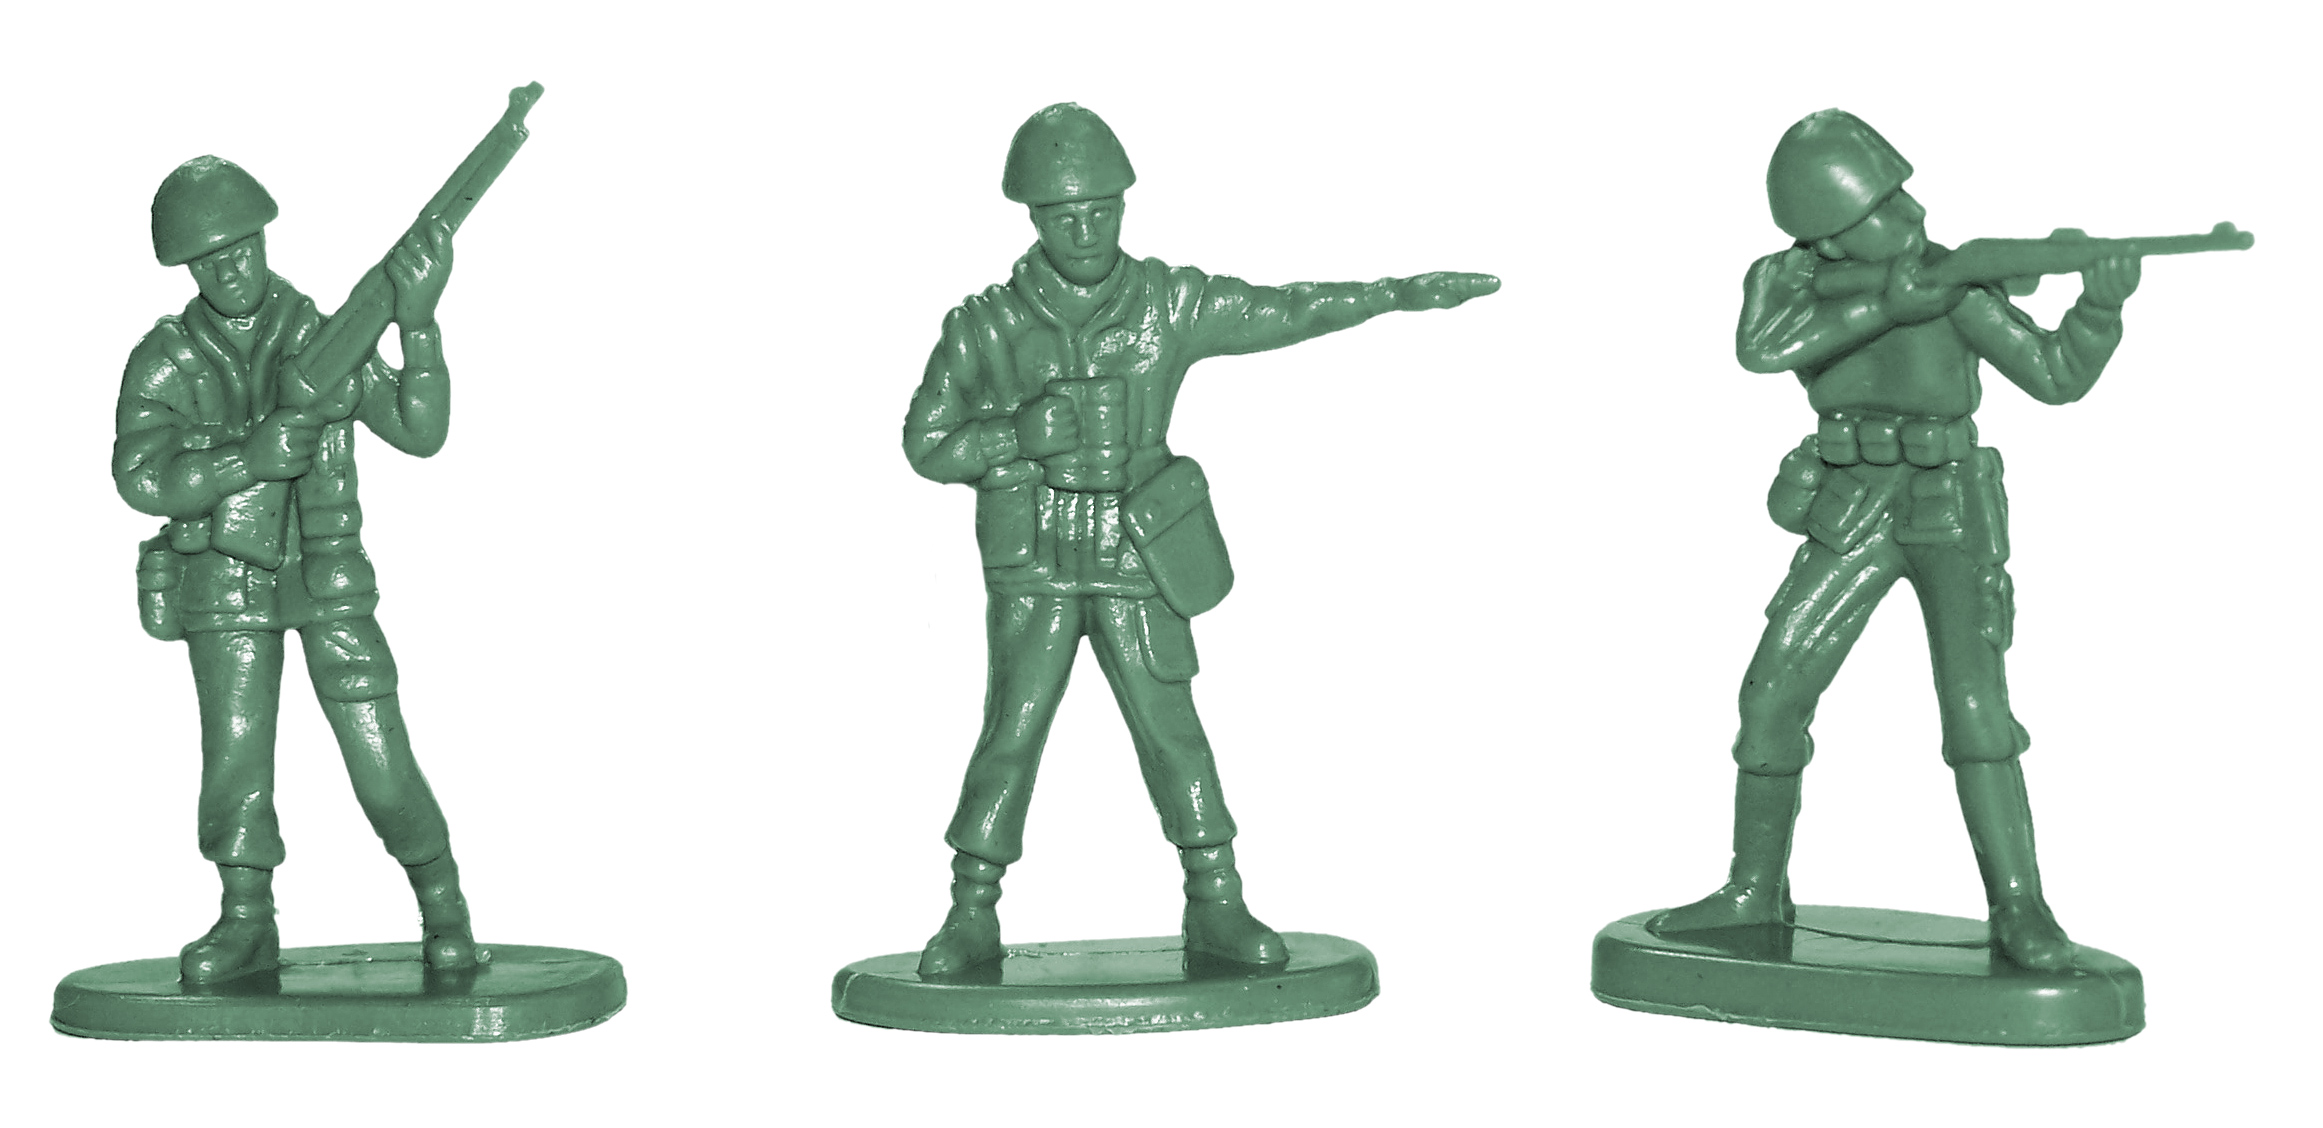 Best Toy And Model Soldiers For Kids : Toy soldiers